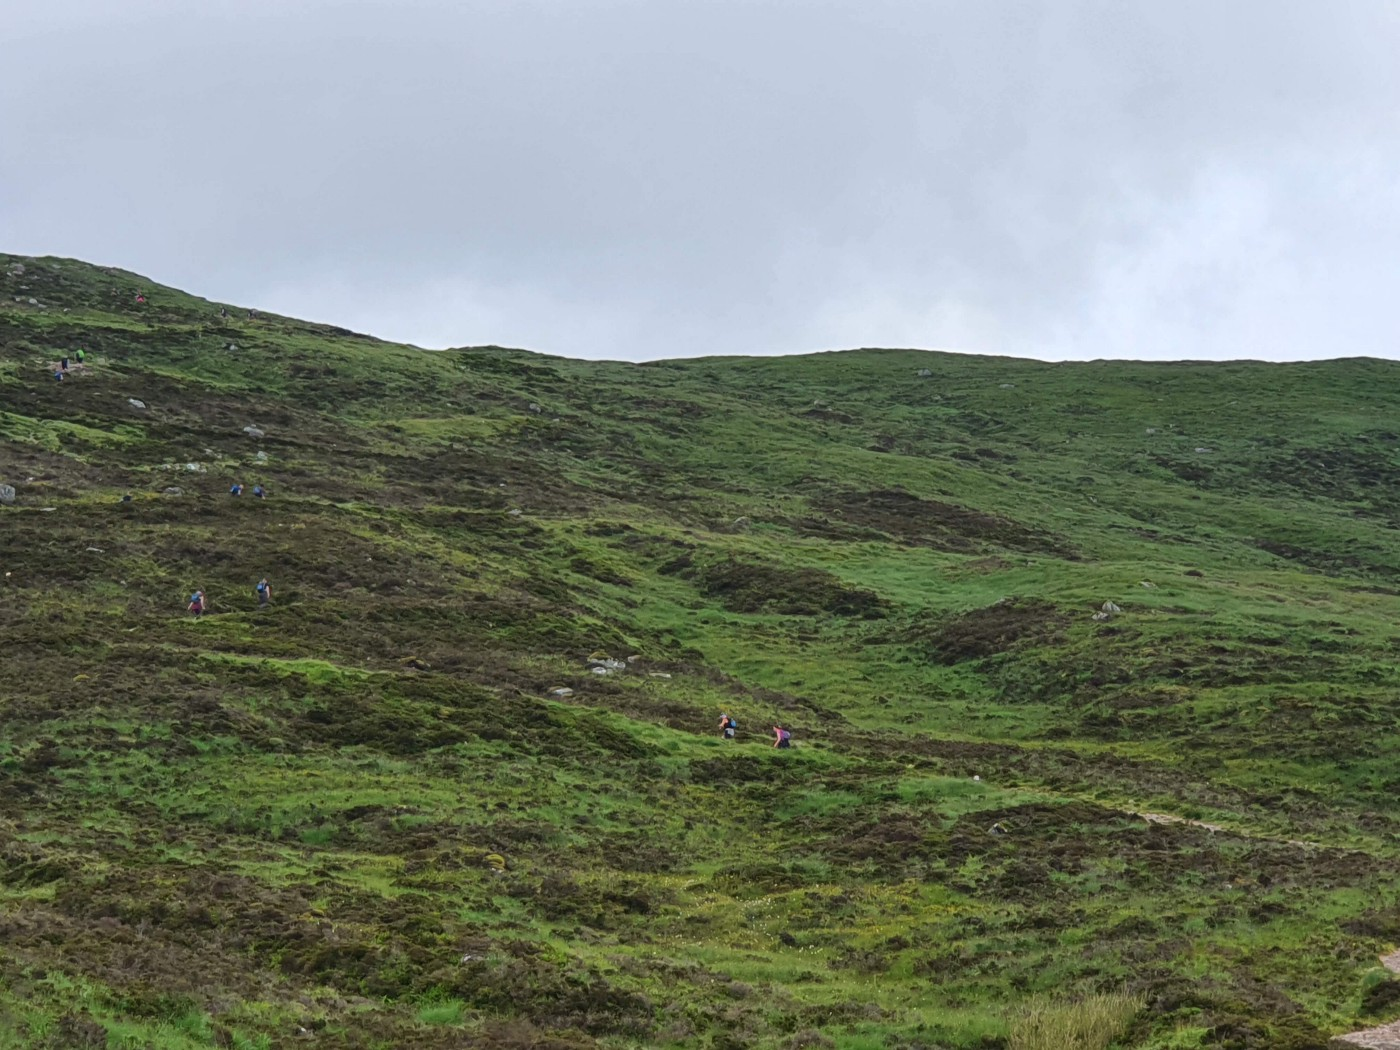 Grassy mountain with people hiking up it.